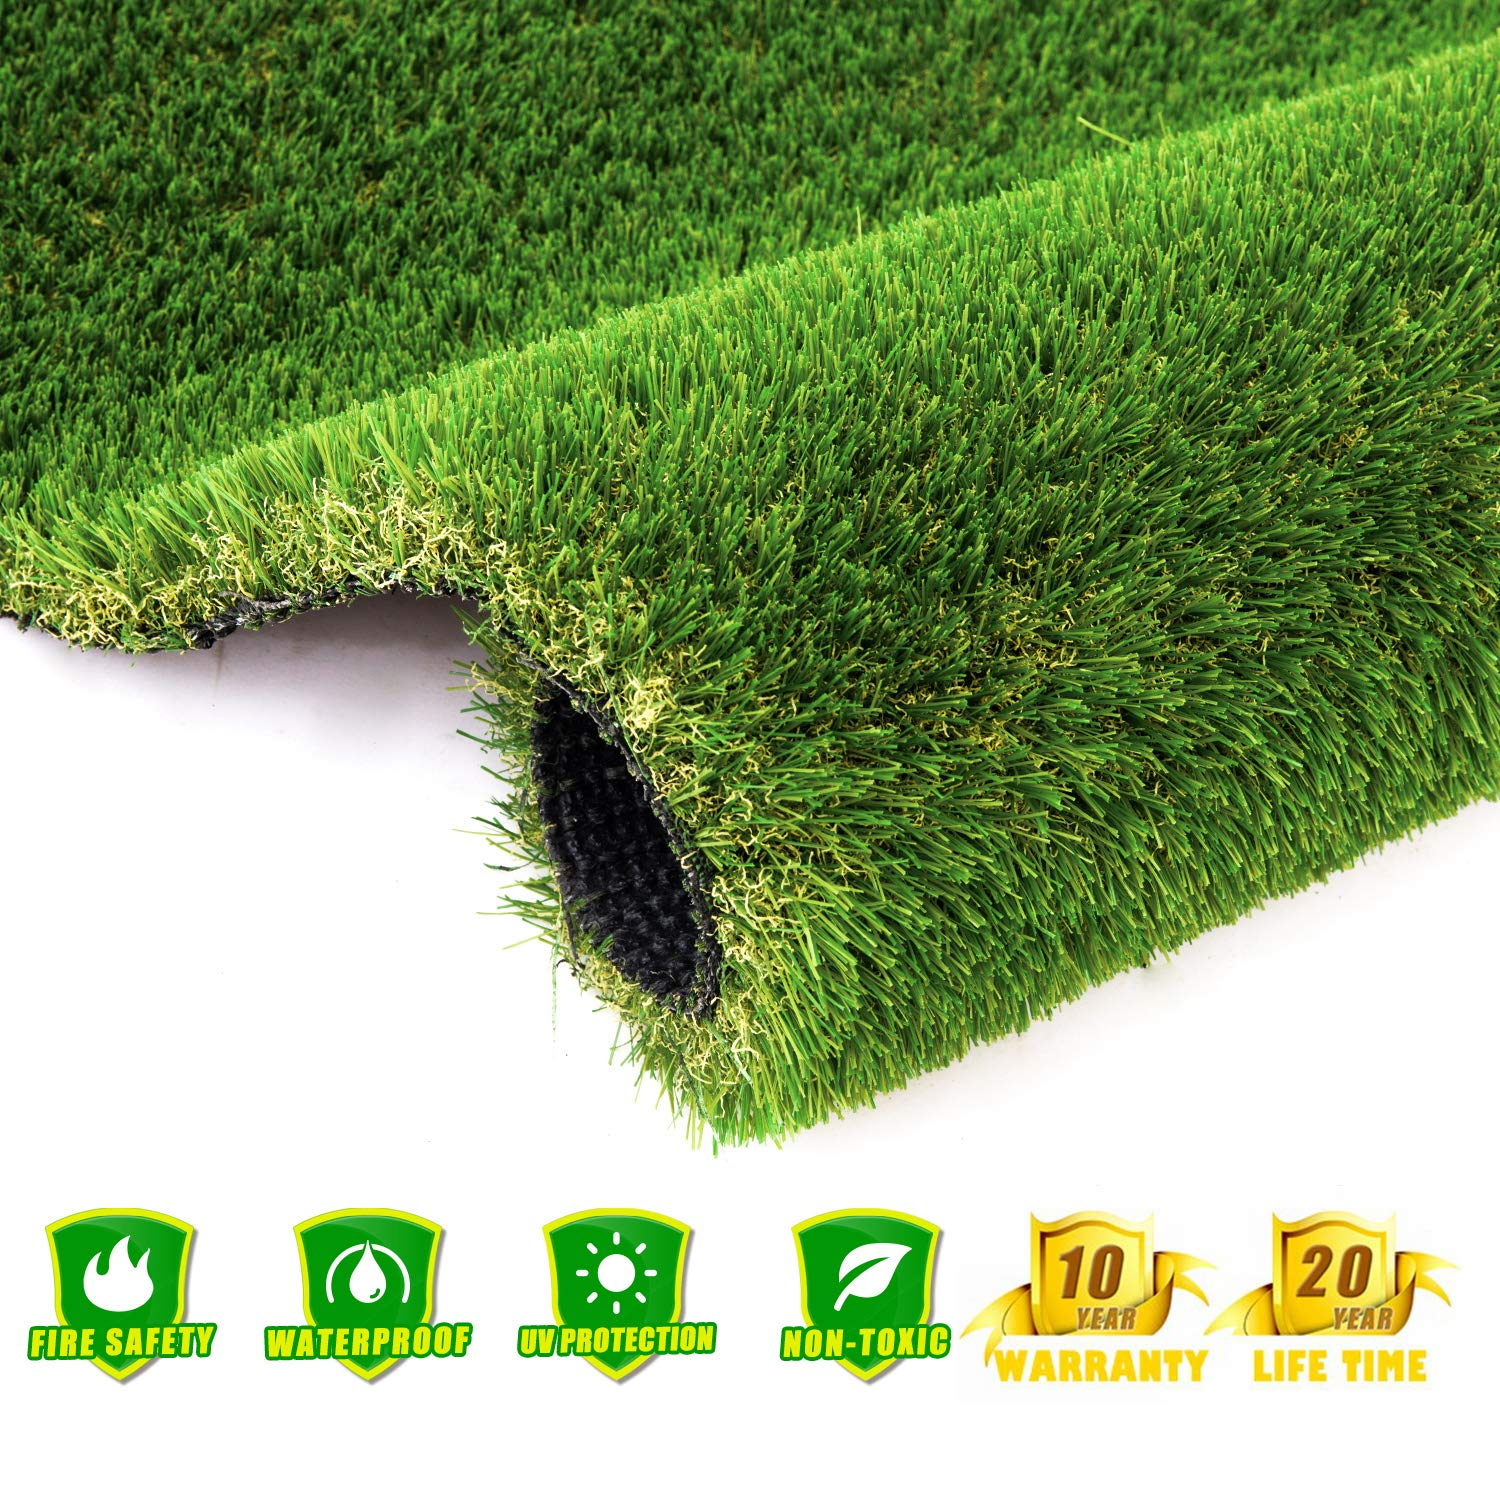 AYOHA 40'' x 80'' Artificial Grass, Soft Pet Turf Grass Mat, Non Toxic, Thick Lawn Puppy Potty Training, Perfect for Dog Mat Pad, Carpet Doormat, Easy to Clean with Drain Holes, High Density, Hight 35mm